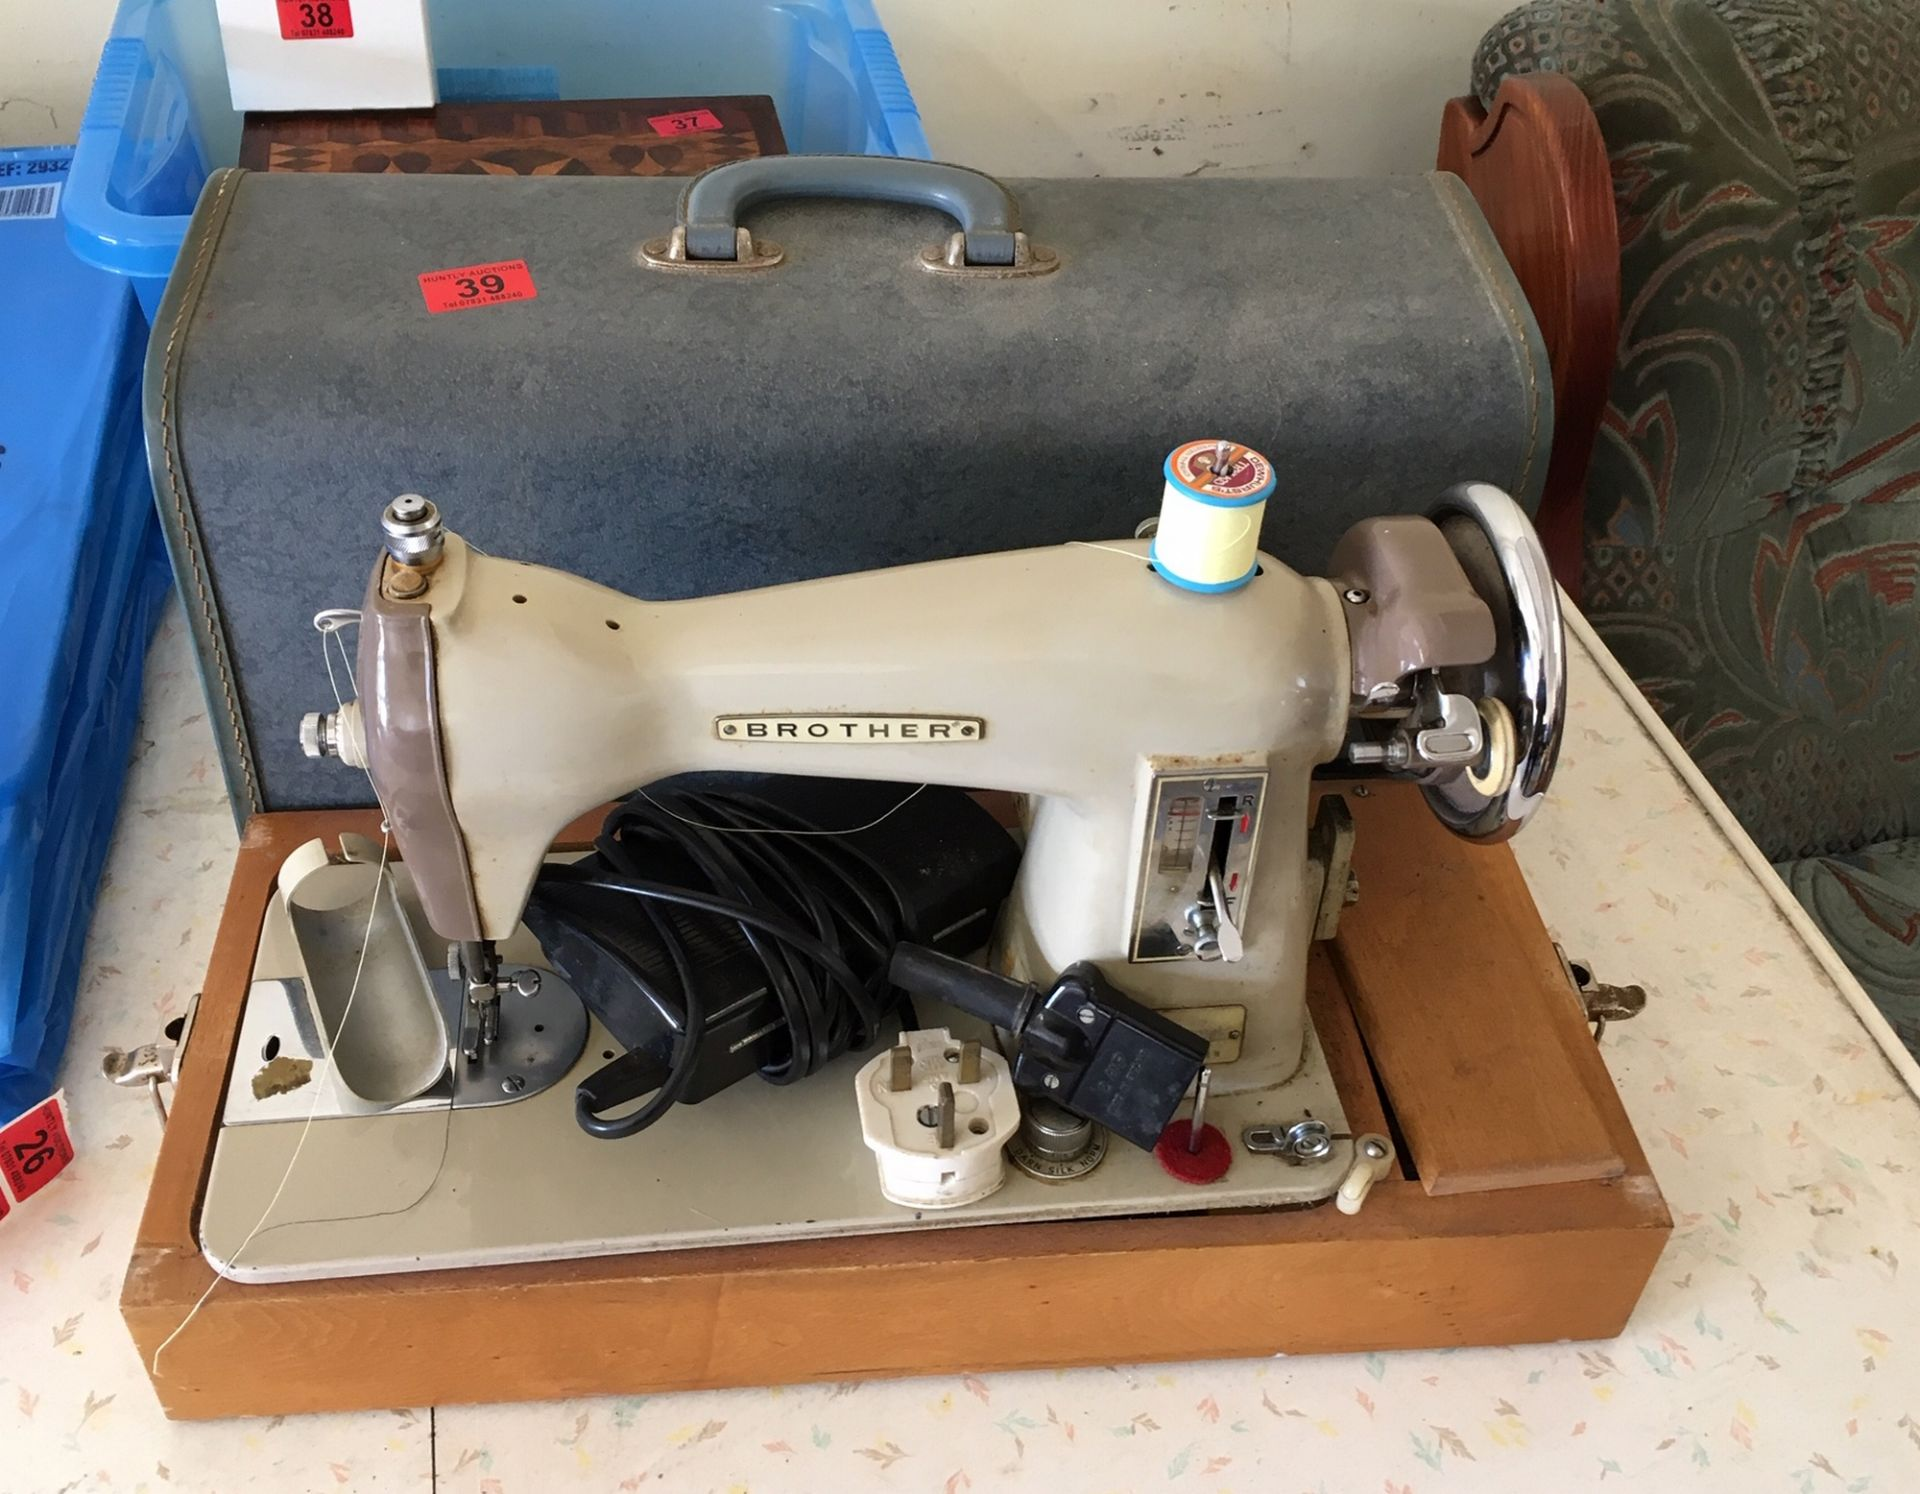 Lot 39 - Brother Sewing Machine